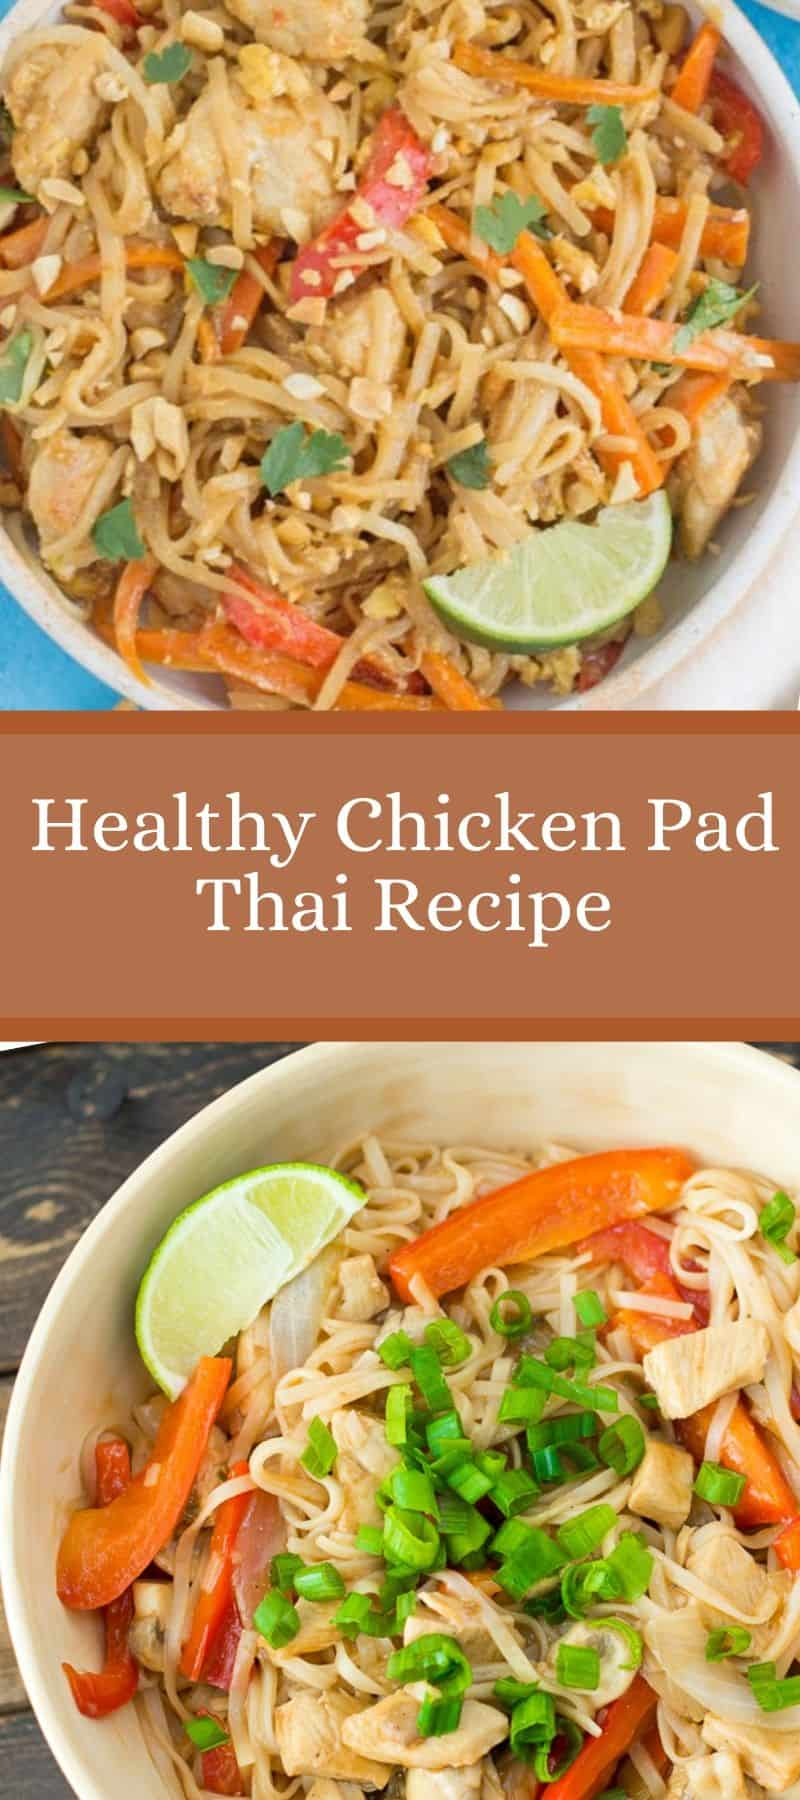 Healthy Chicken Pad Thai Recipe